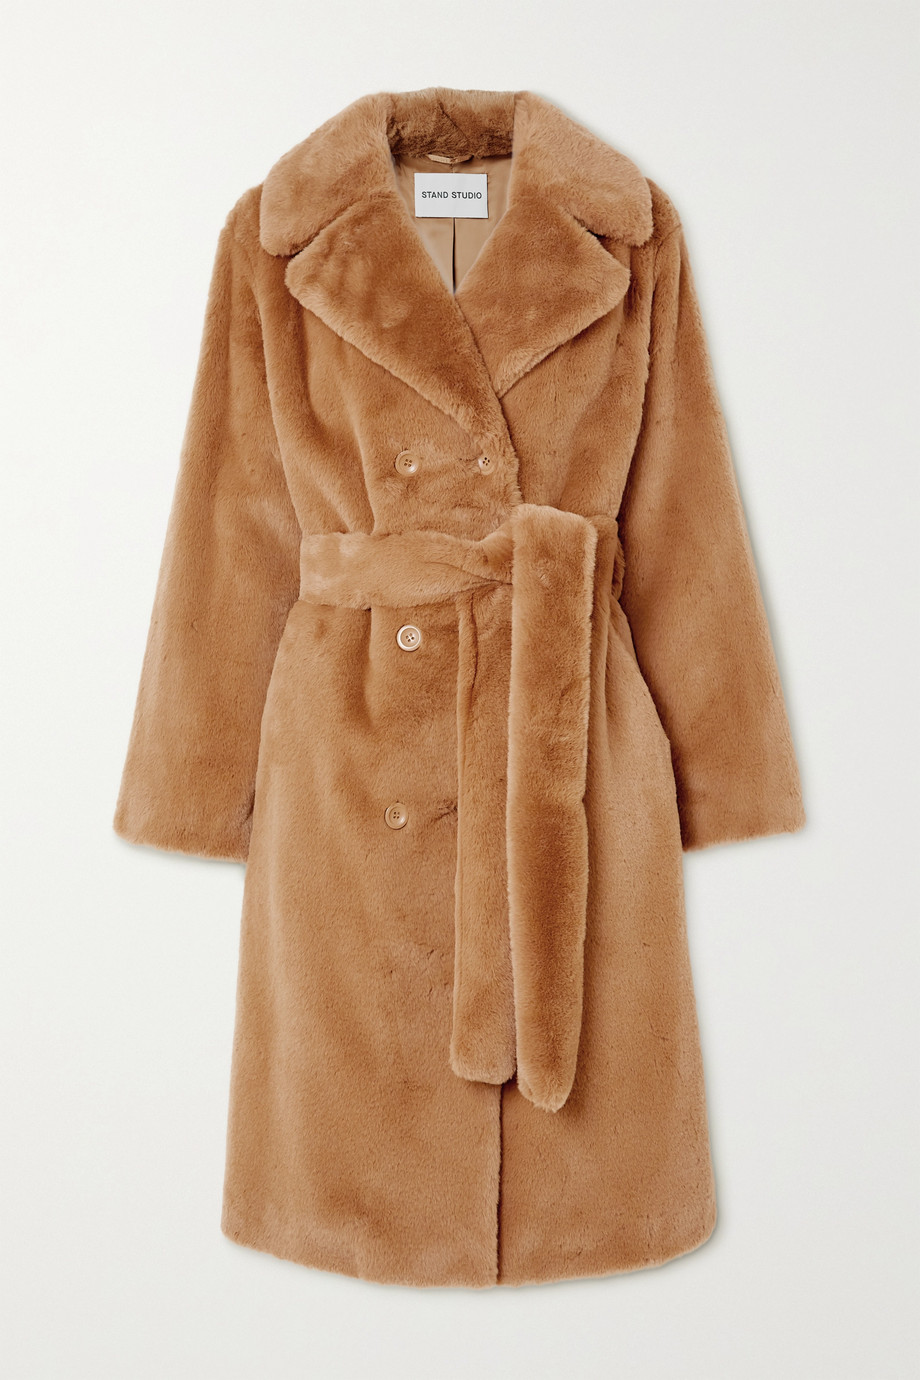 Stand Studio Faustine belted double-breasted faux fur coat